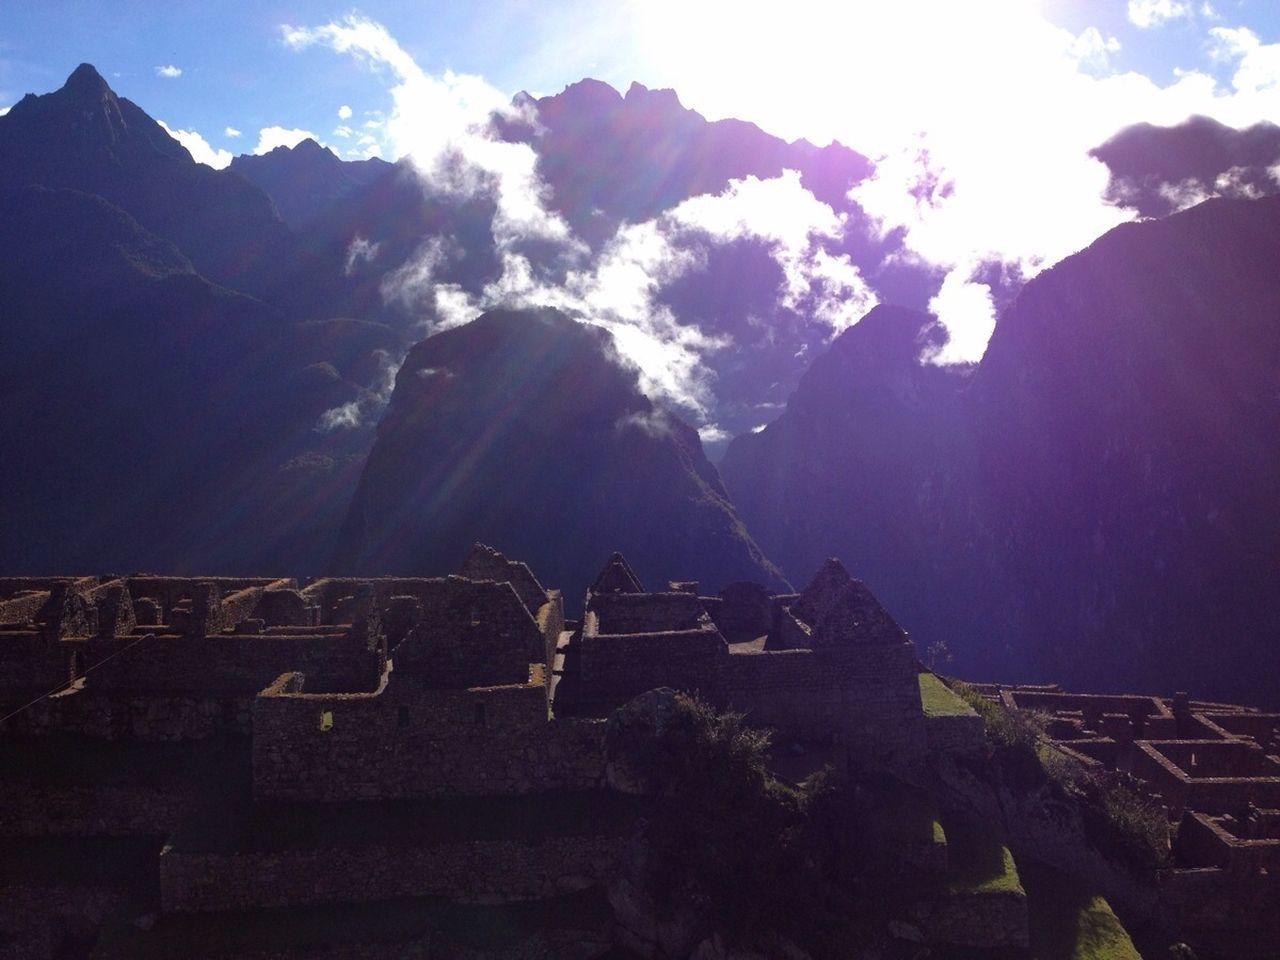 Sunrise At Machu Picchu Trip Dalatafilmes Sunrise Machu Picchu Macchu Picchu Macchupicchu Sunrise_Collection